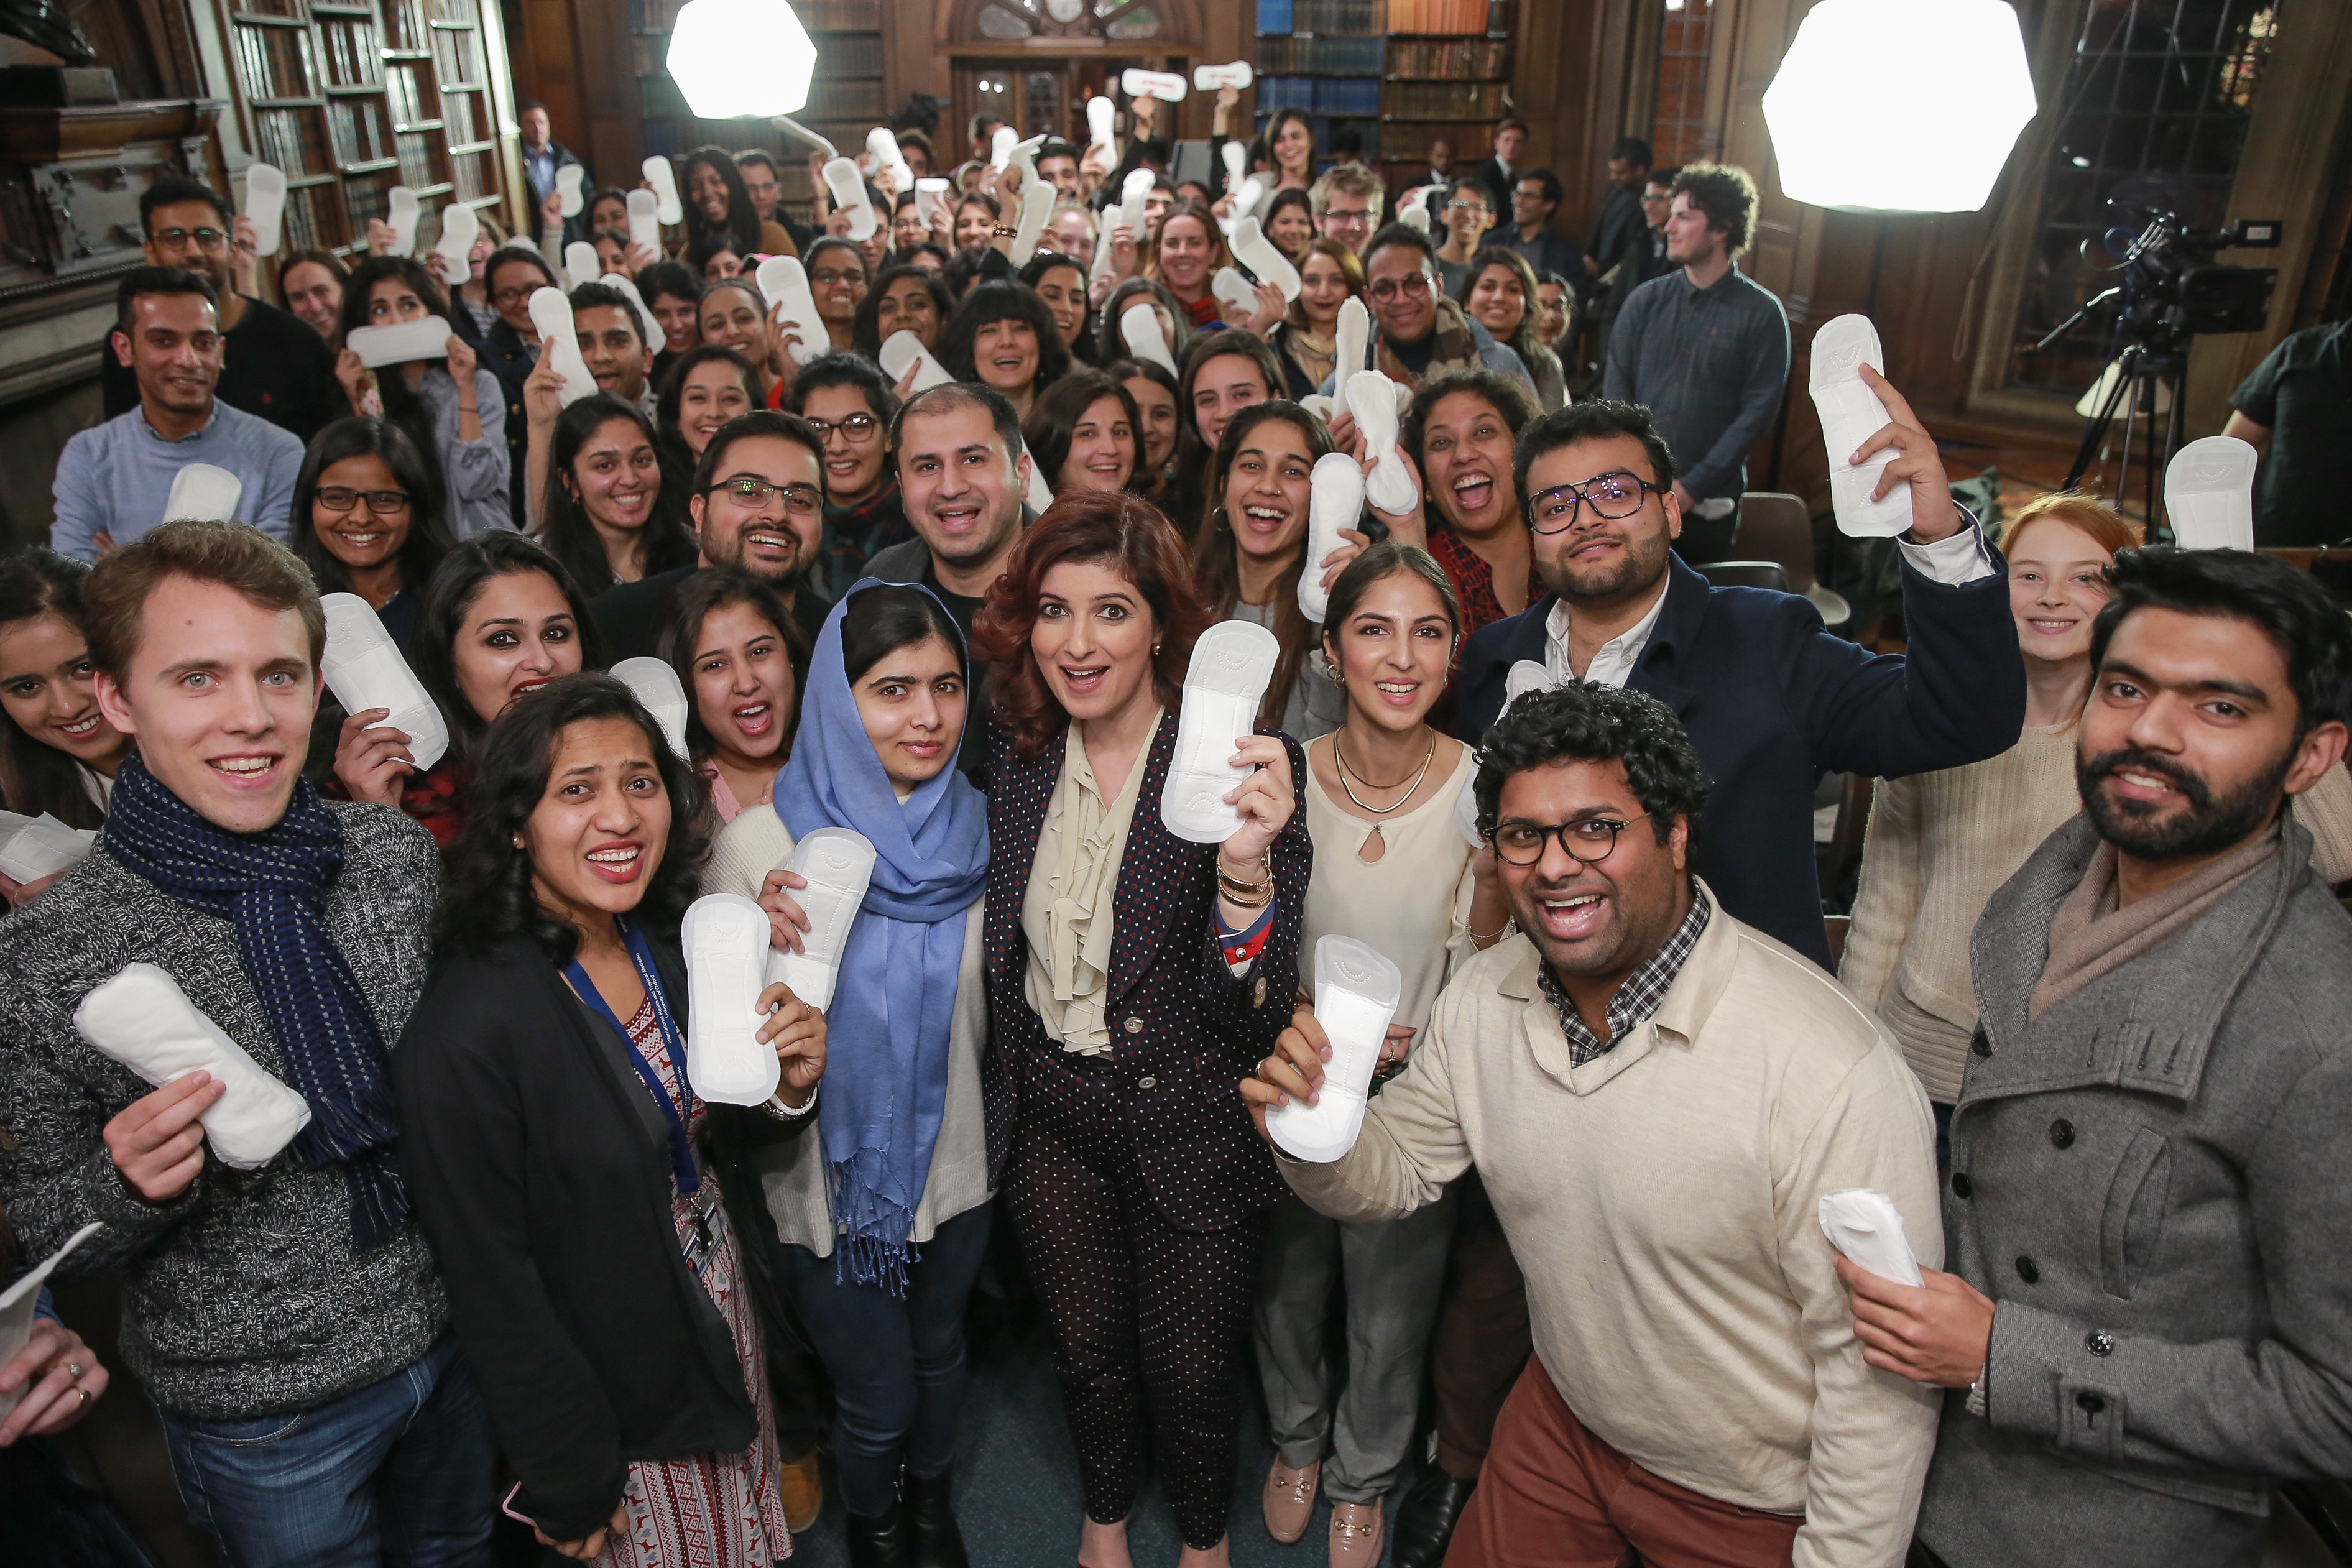 PAD MAN FEVER HITS THE UK AS TWINKLE KHANNA GETS THE NATION TALKING PERIODS